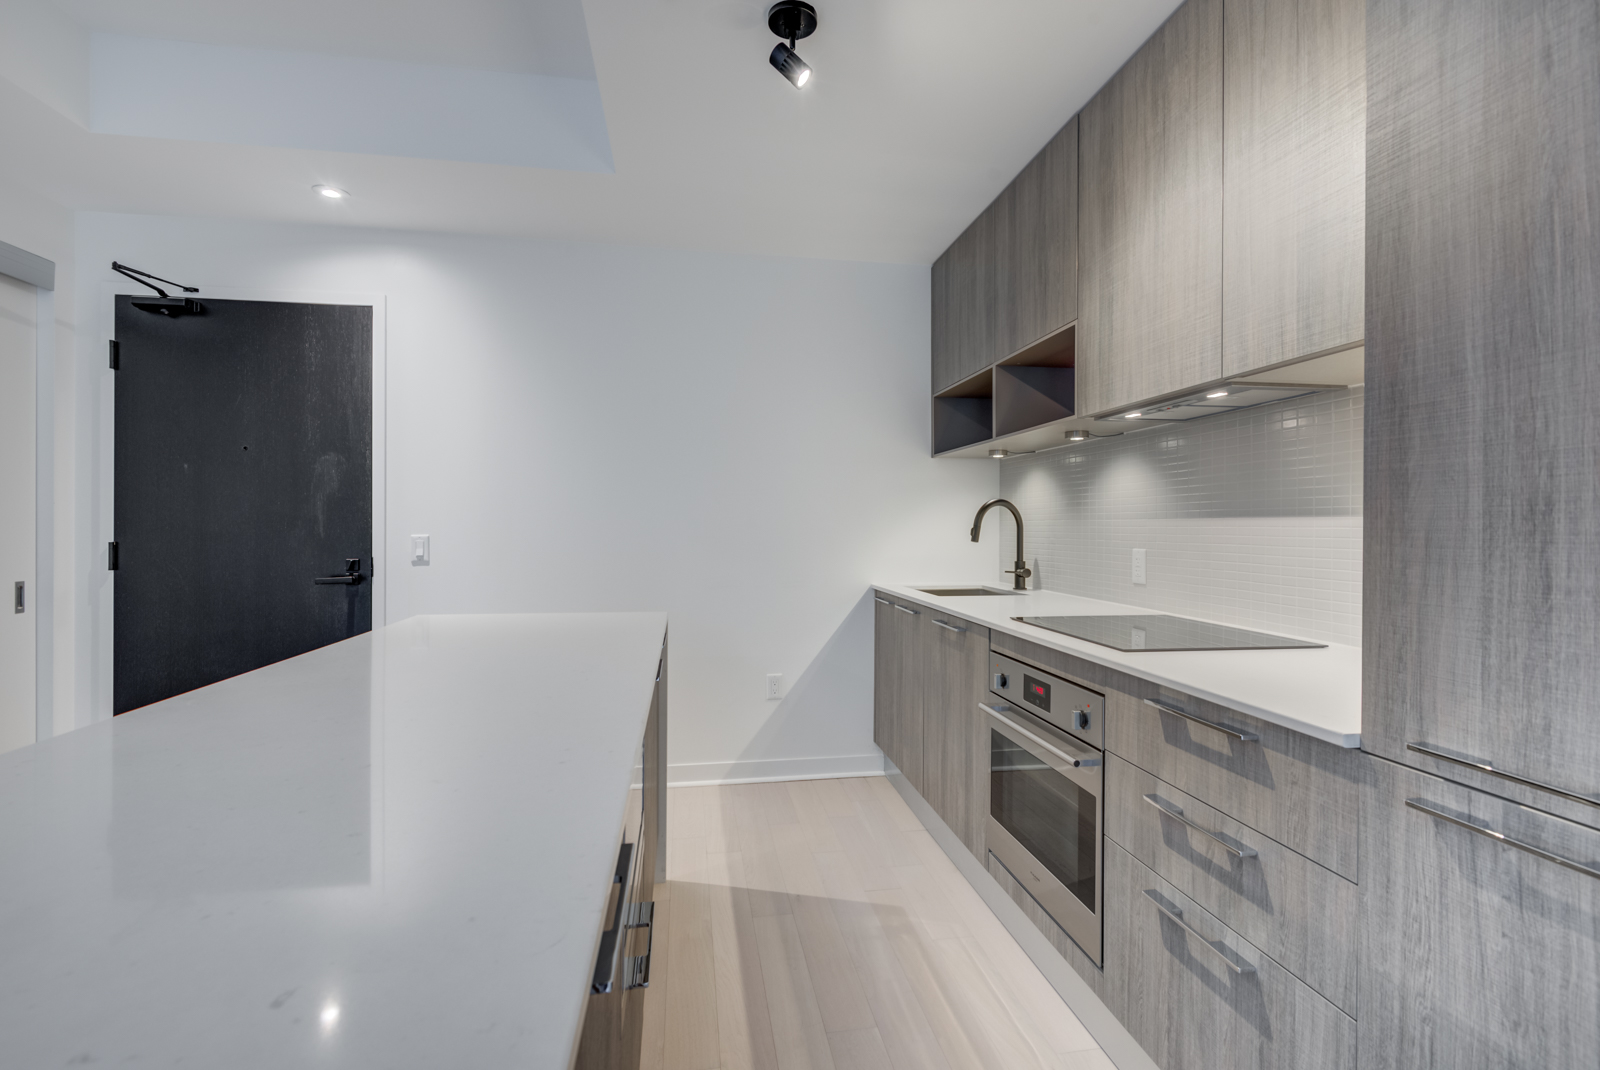 Kitchen cabinets, drawers and appliances with track-lighting and under-cabinet lighting.